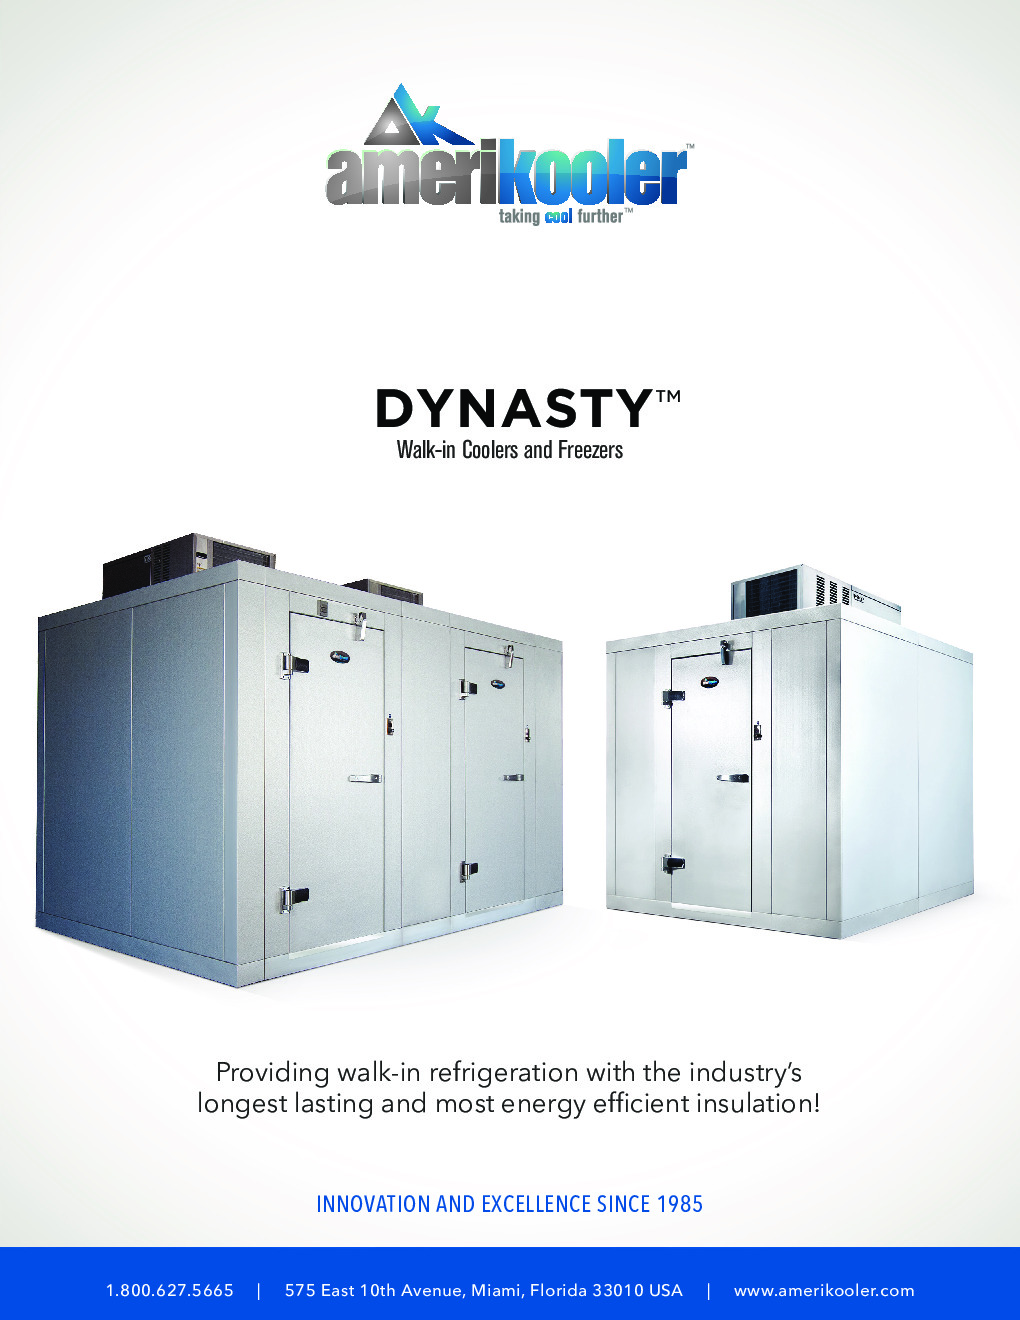 AmeriKooler DW101477N-7/7-RM 10' X 14' Walk-In Cooler, 7' L Cooler without Floor and 7' L Freezer, Remote